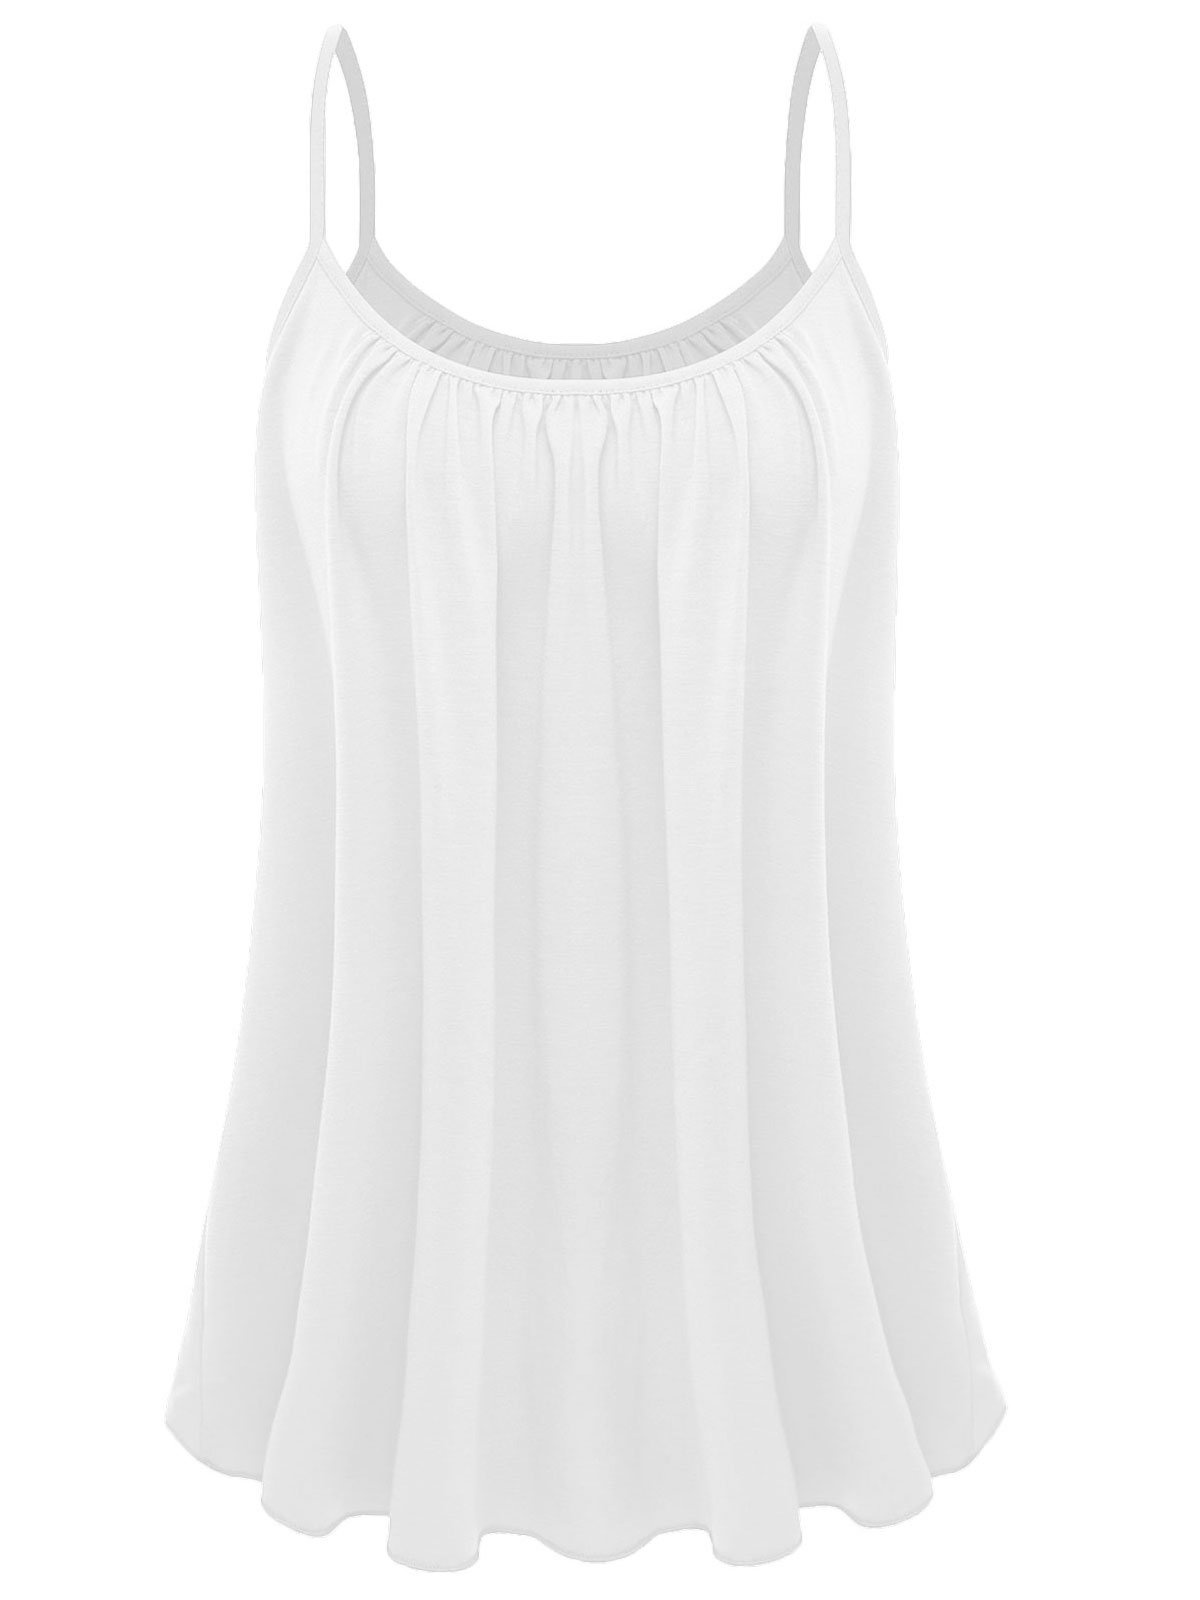 7th Element Womens Plus Size Cami Basic Camisole Tank Top (White,XL)